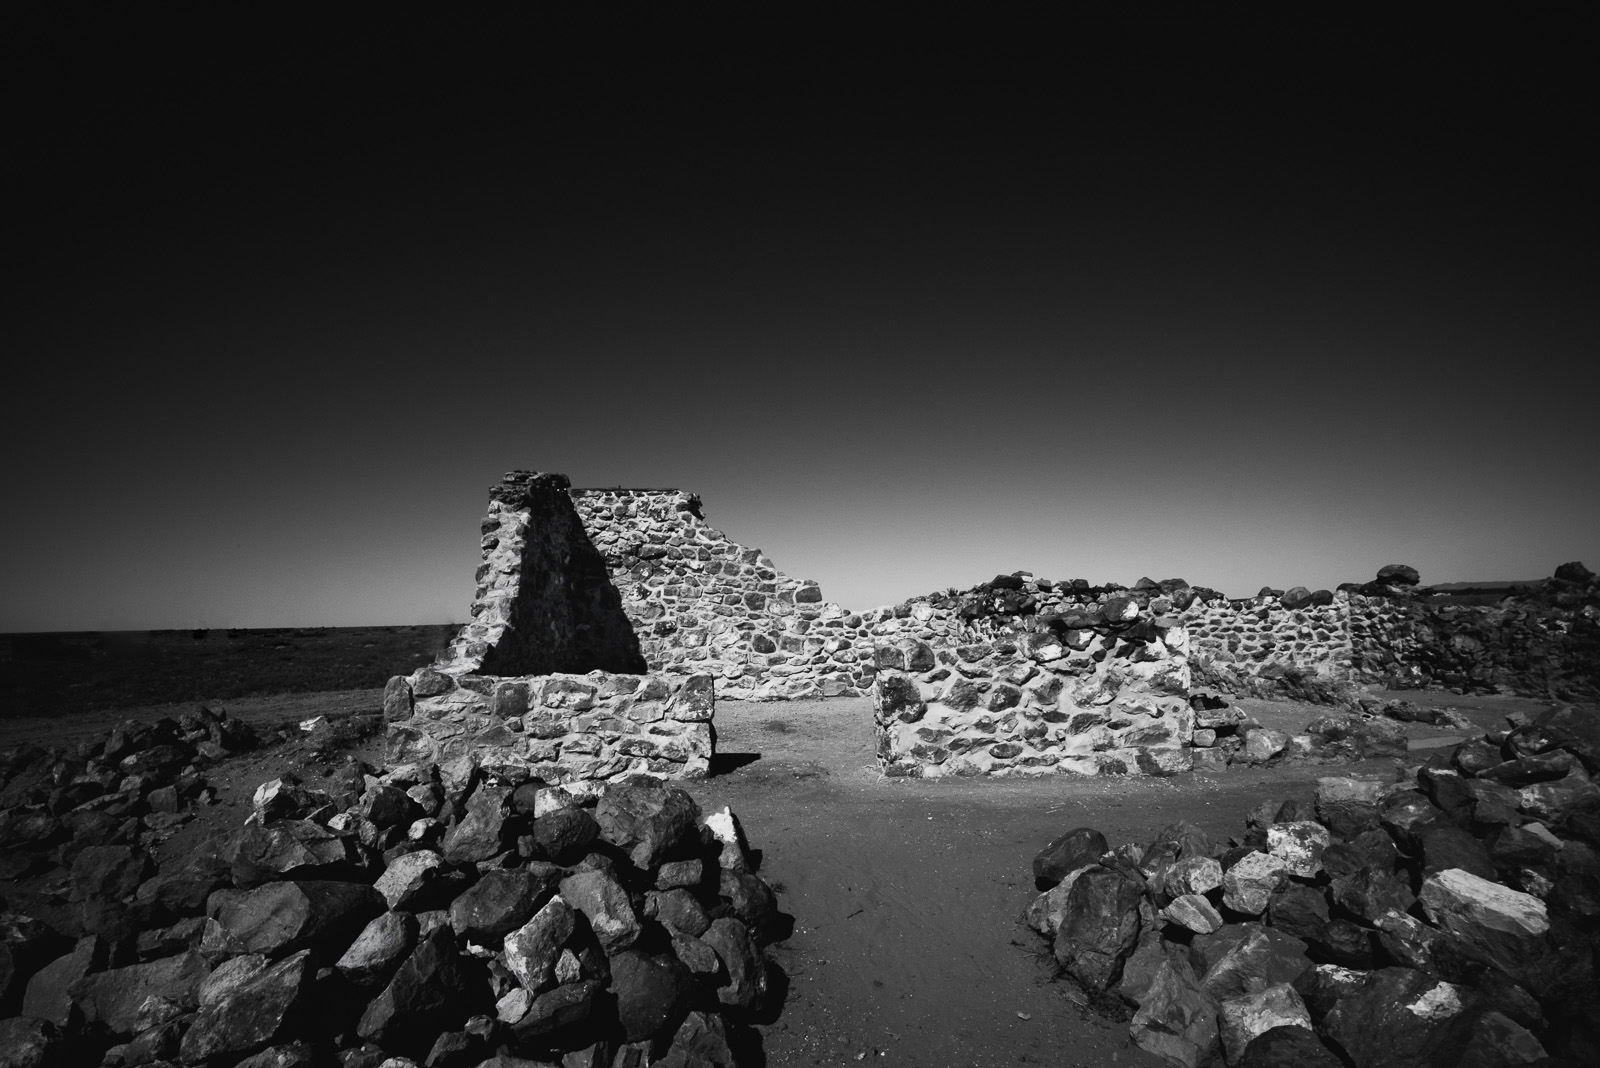 ruins in Australia in black and white by Elle Walker